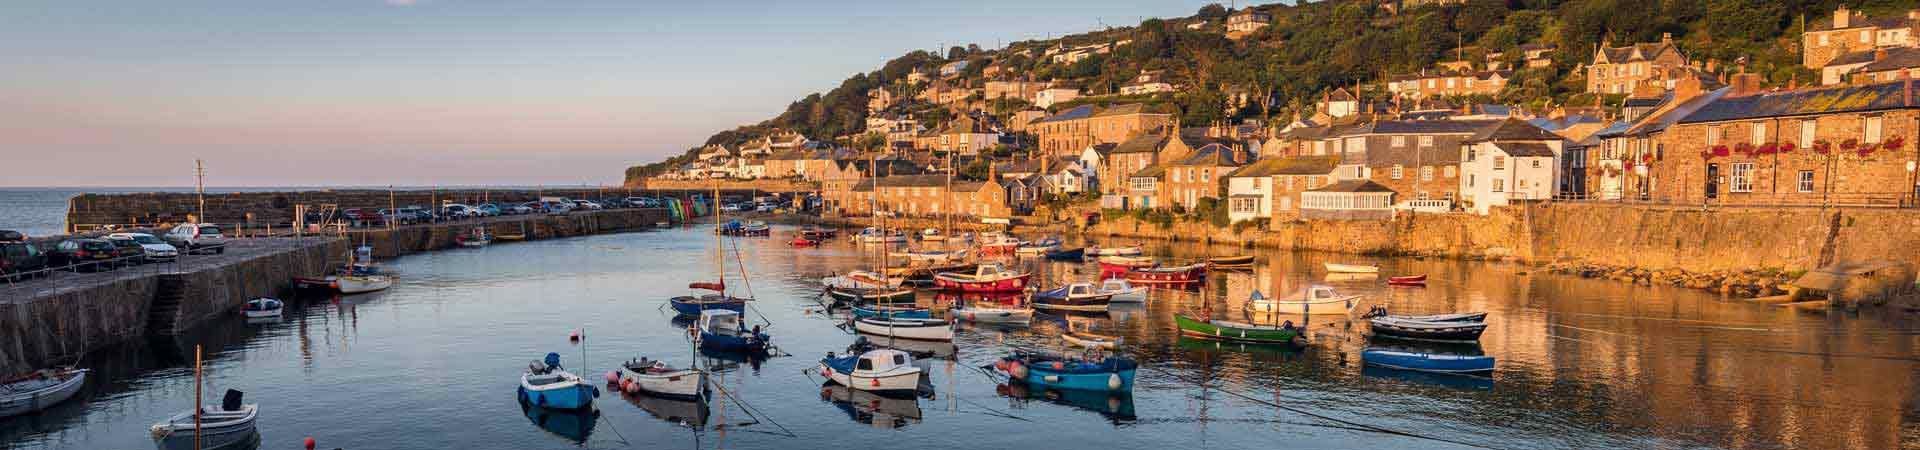 Mousehole Harbour, Cornwall